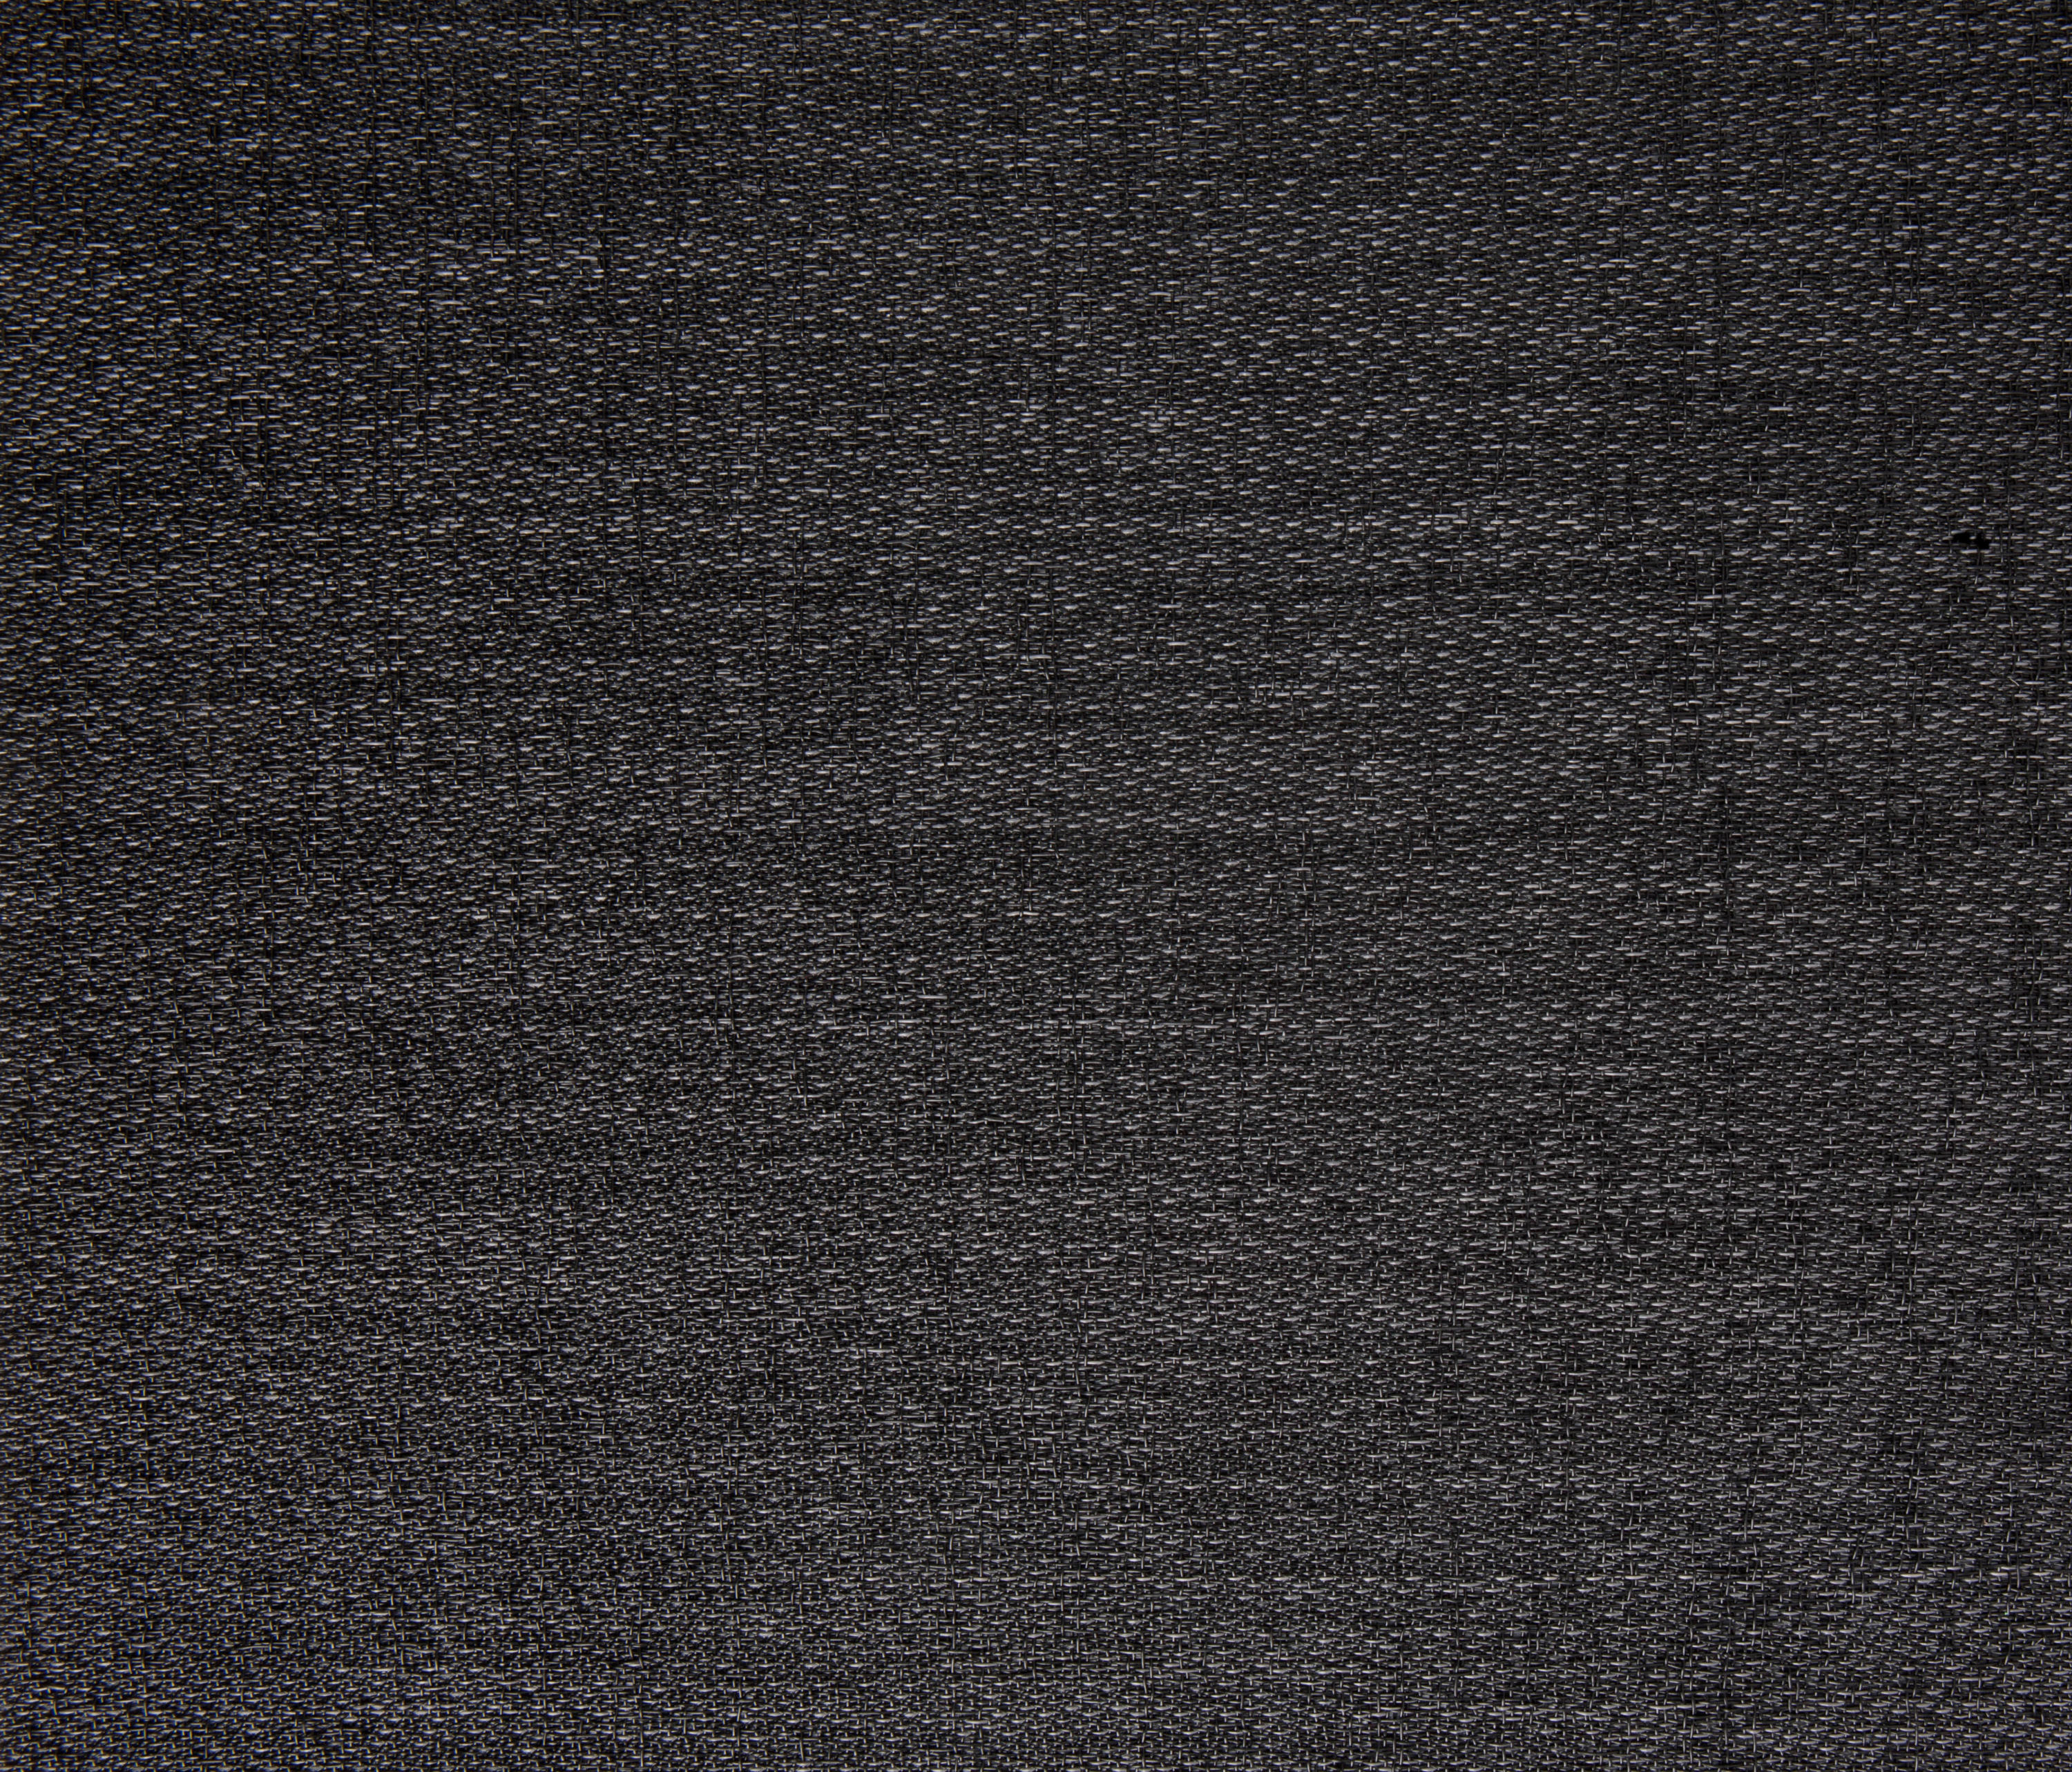 black carpet texture seamless. SEAMLESS TILES | Eclipse - ST By 2tec2 Carpet Tiles Black Texture Seamless D